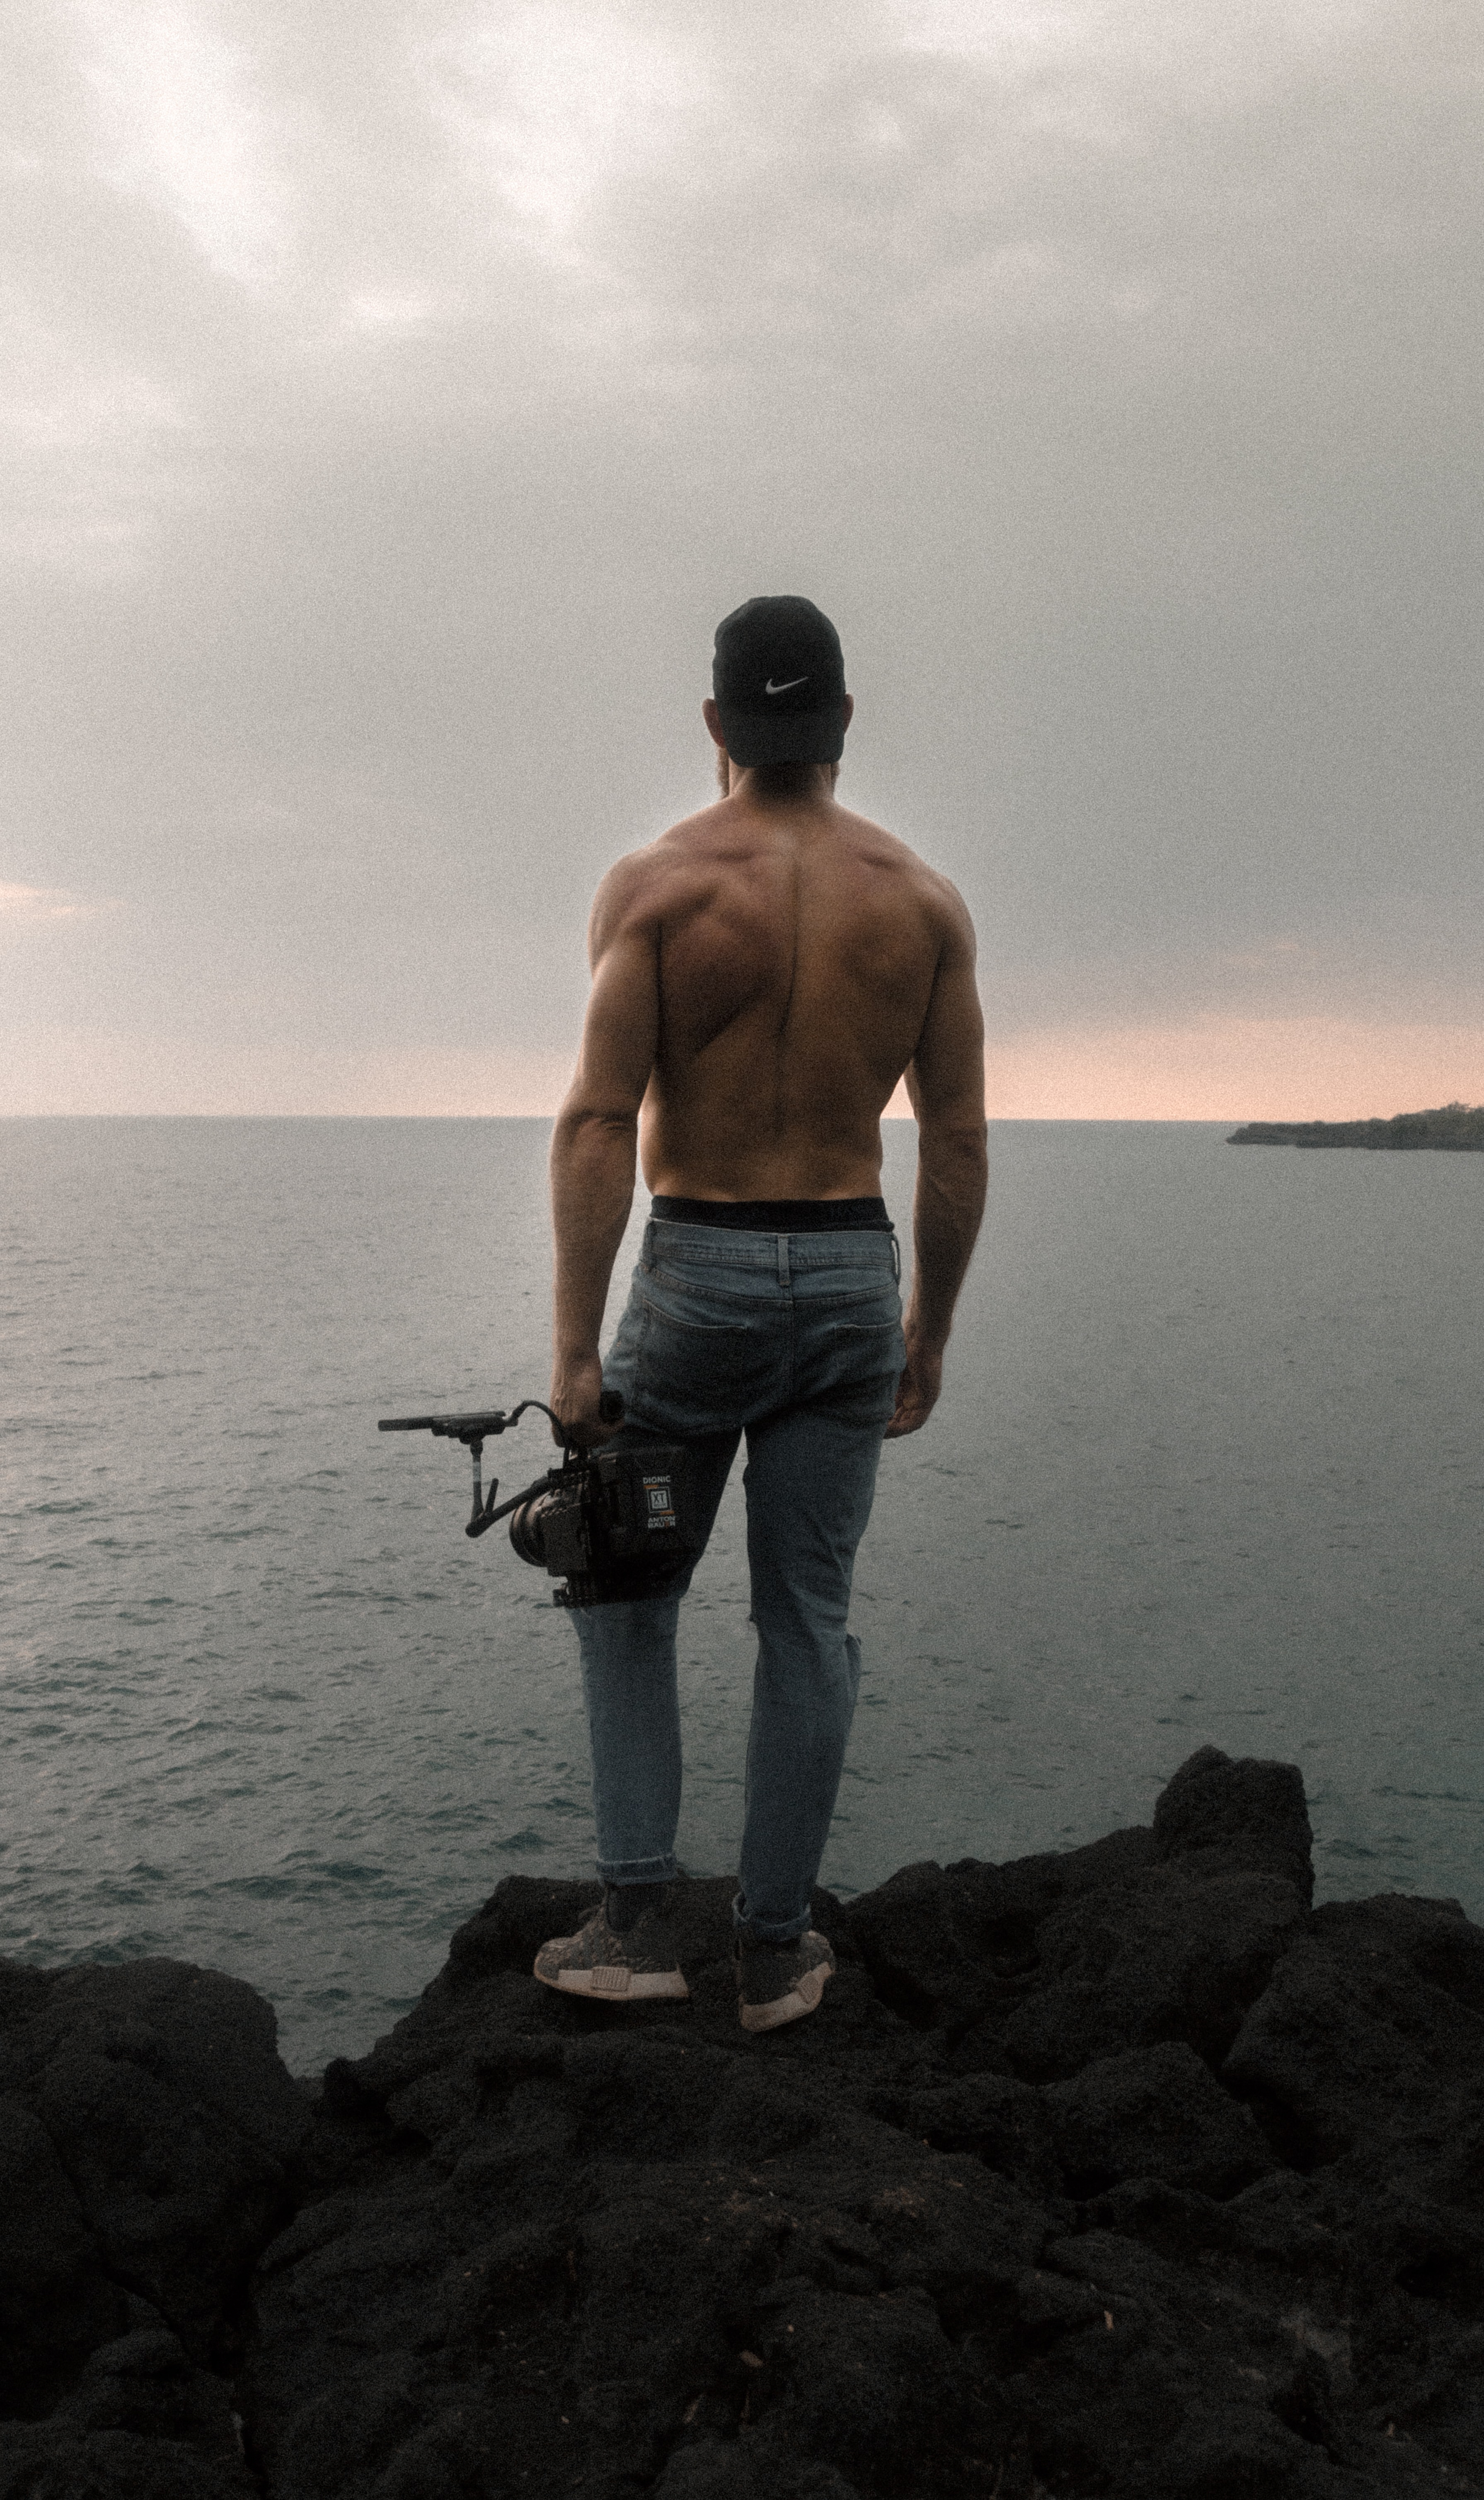 back view of topless man standing on cliff while holding camera